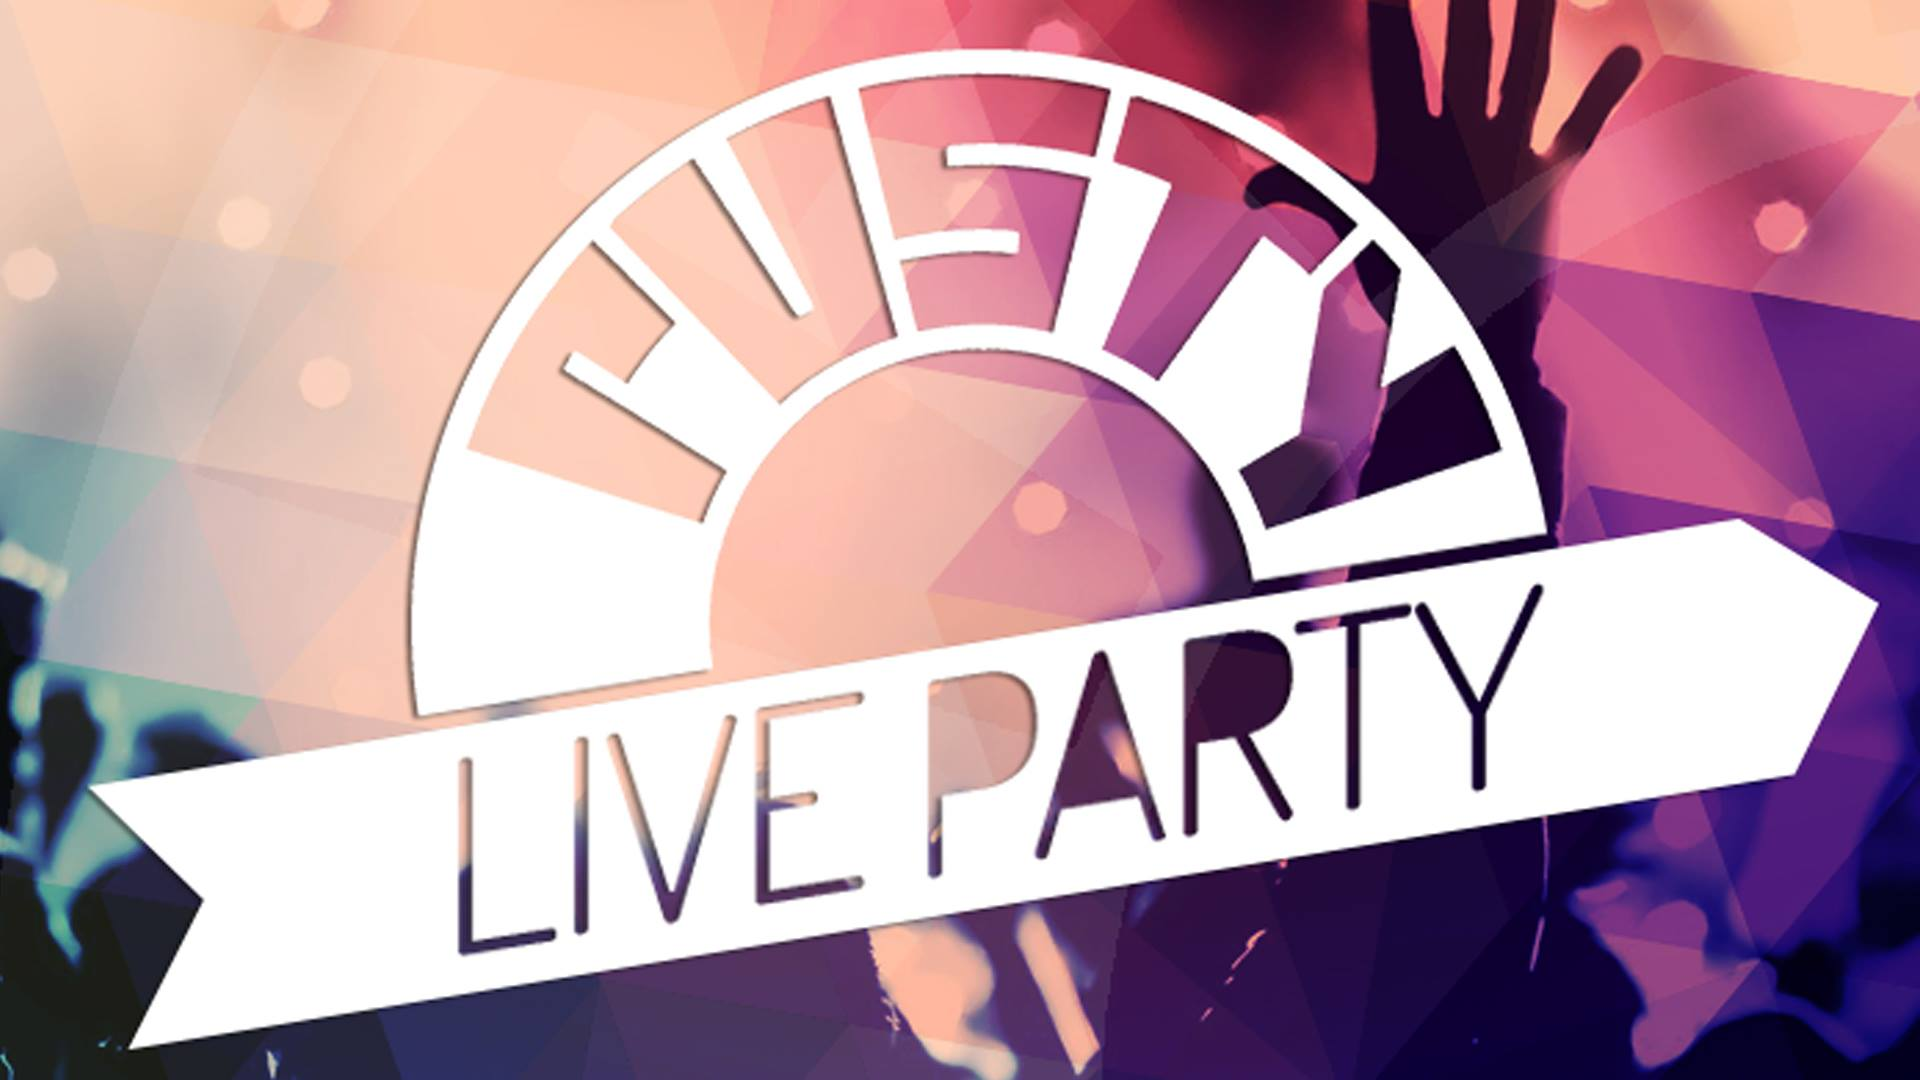 C'è chi spinge sull'acceleratore al Rusty Live Party 2017